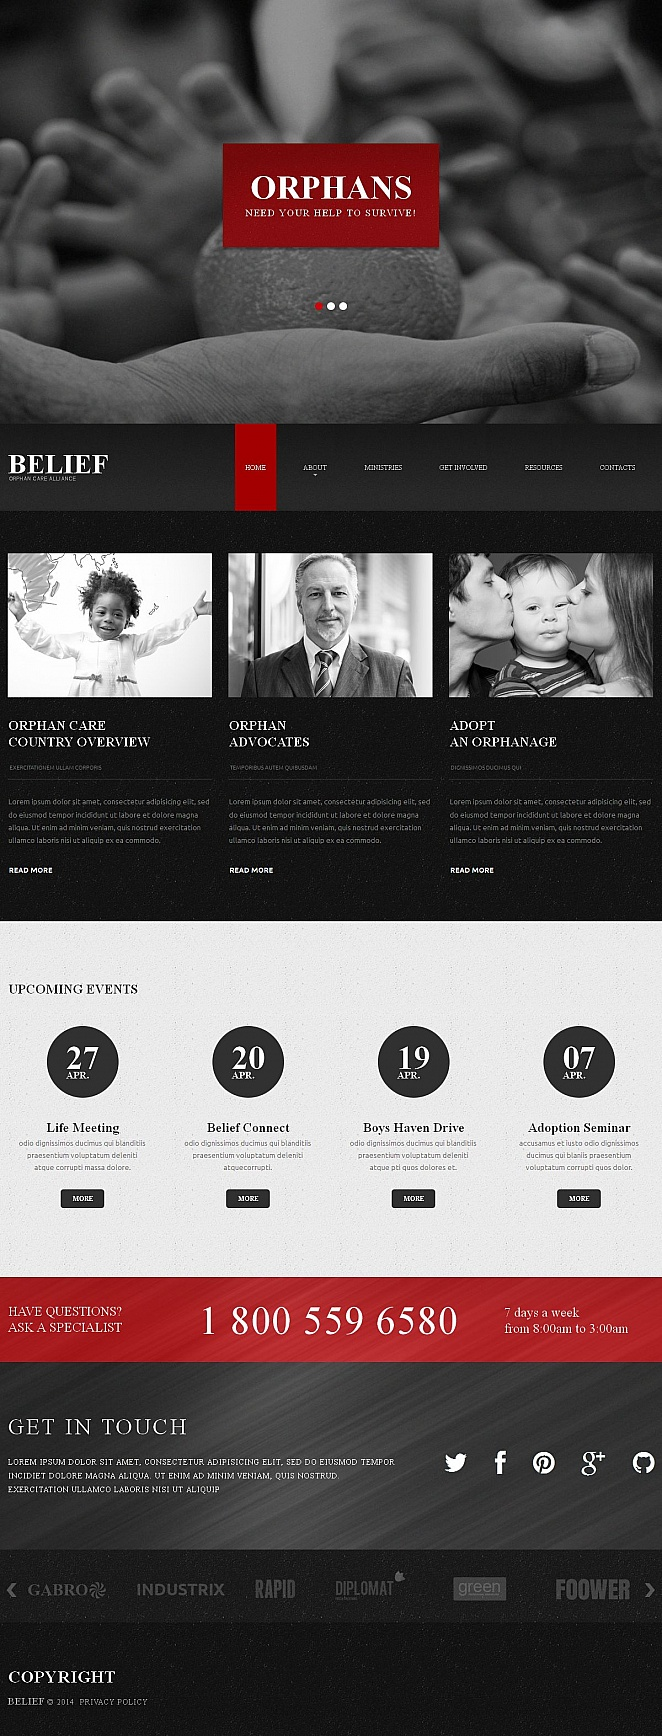 Black Website Template for Charities - image